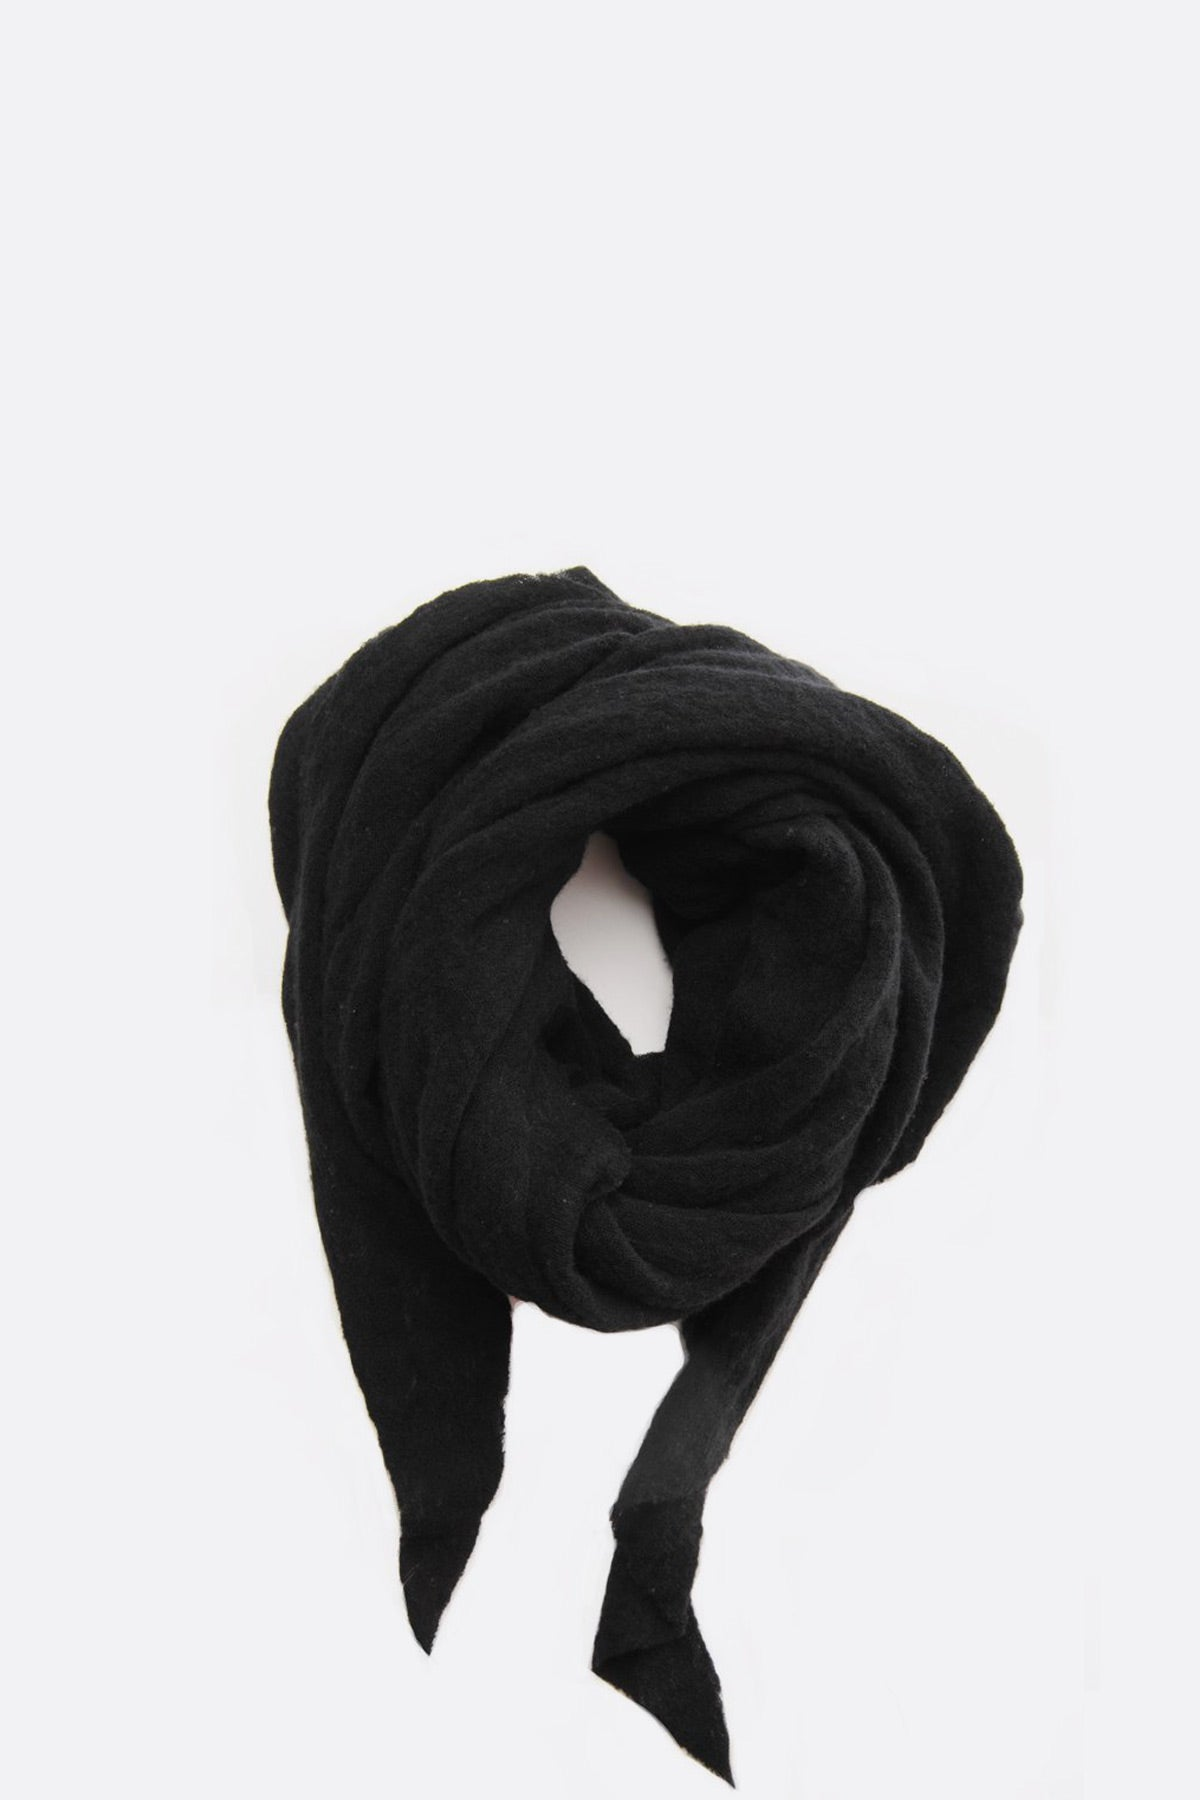 Black Diamond Shaped Cashmere Scarf by Botto Giuseppe